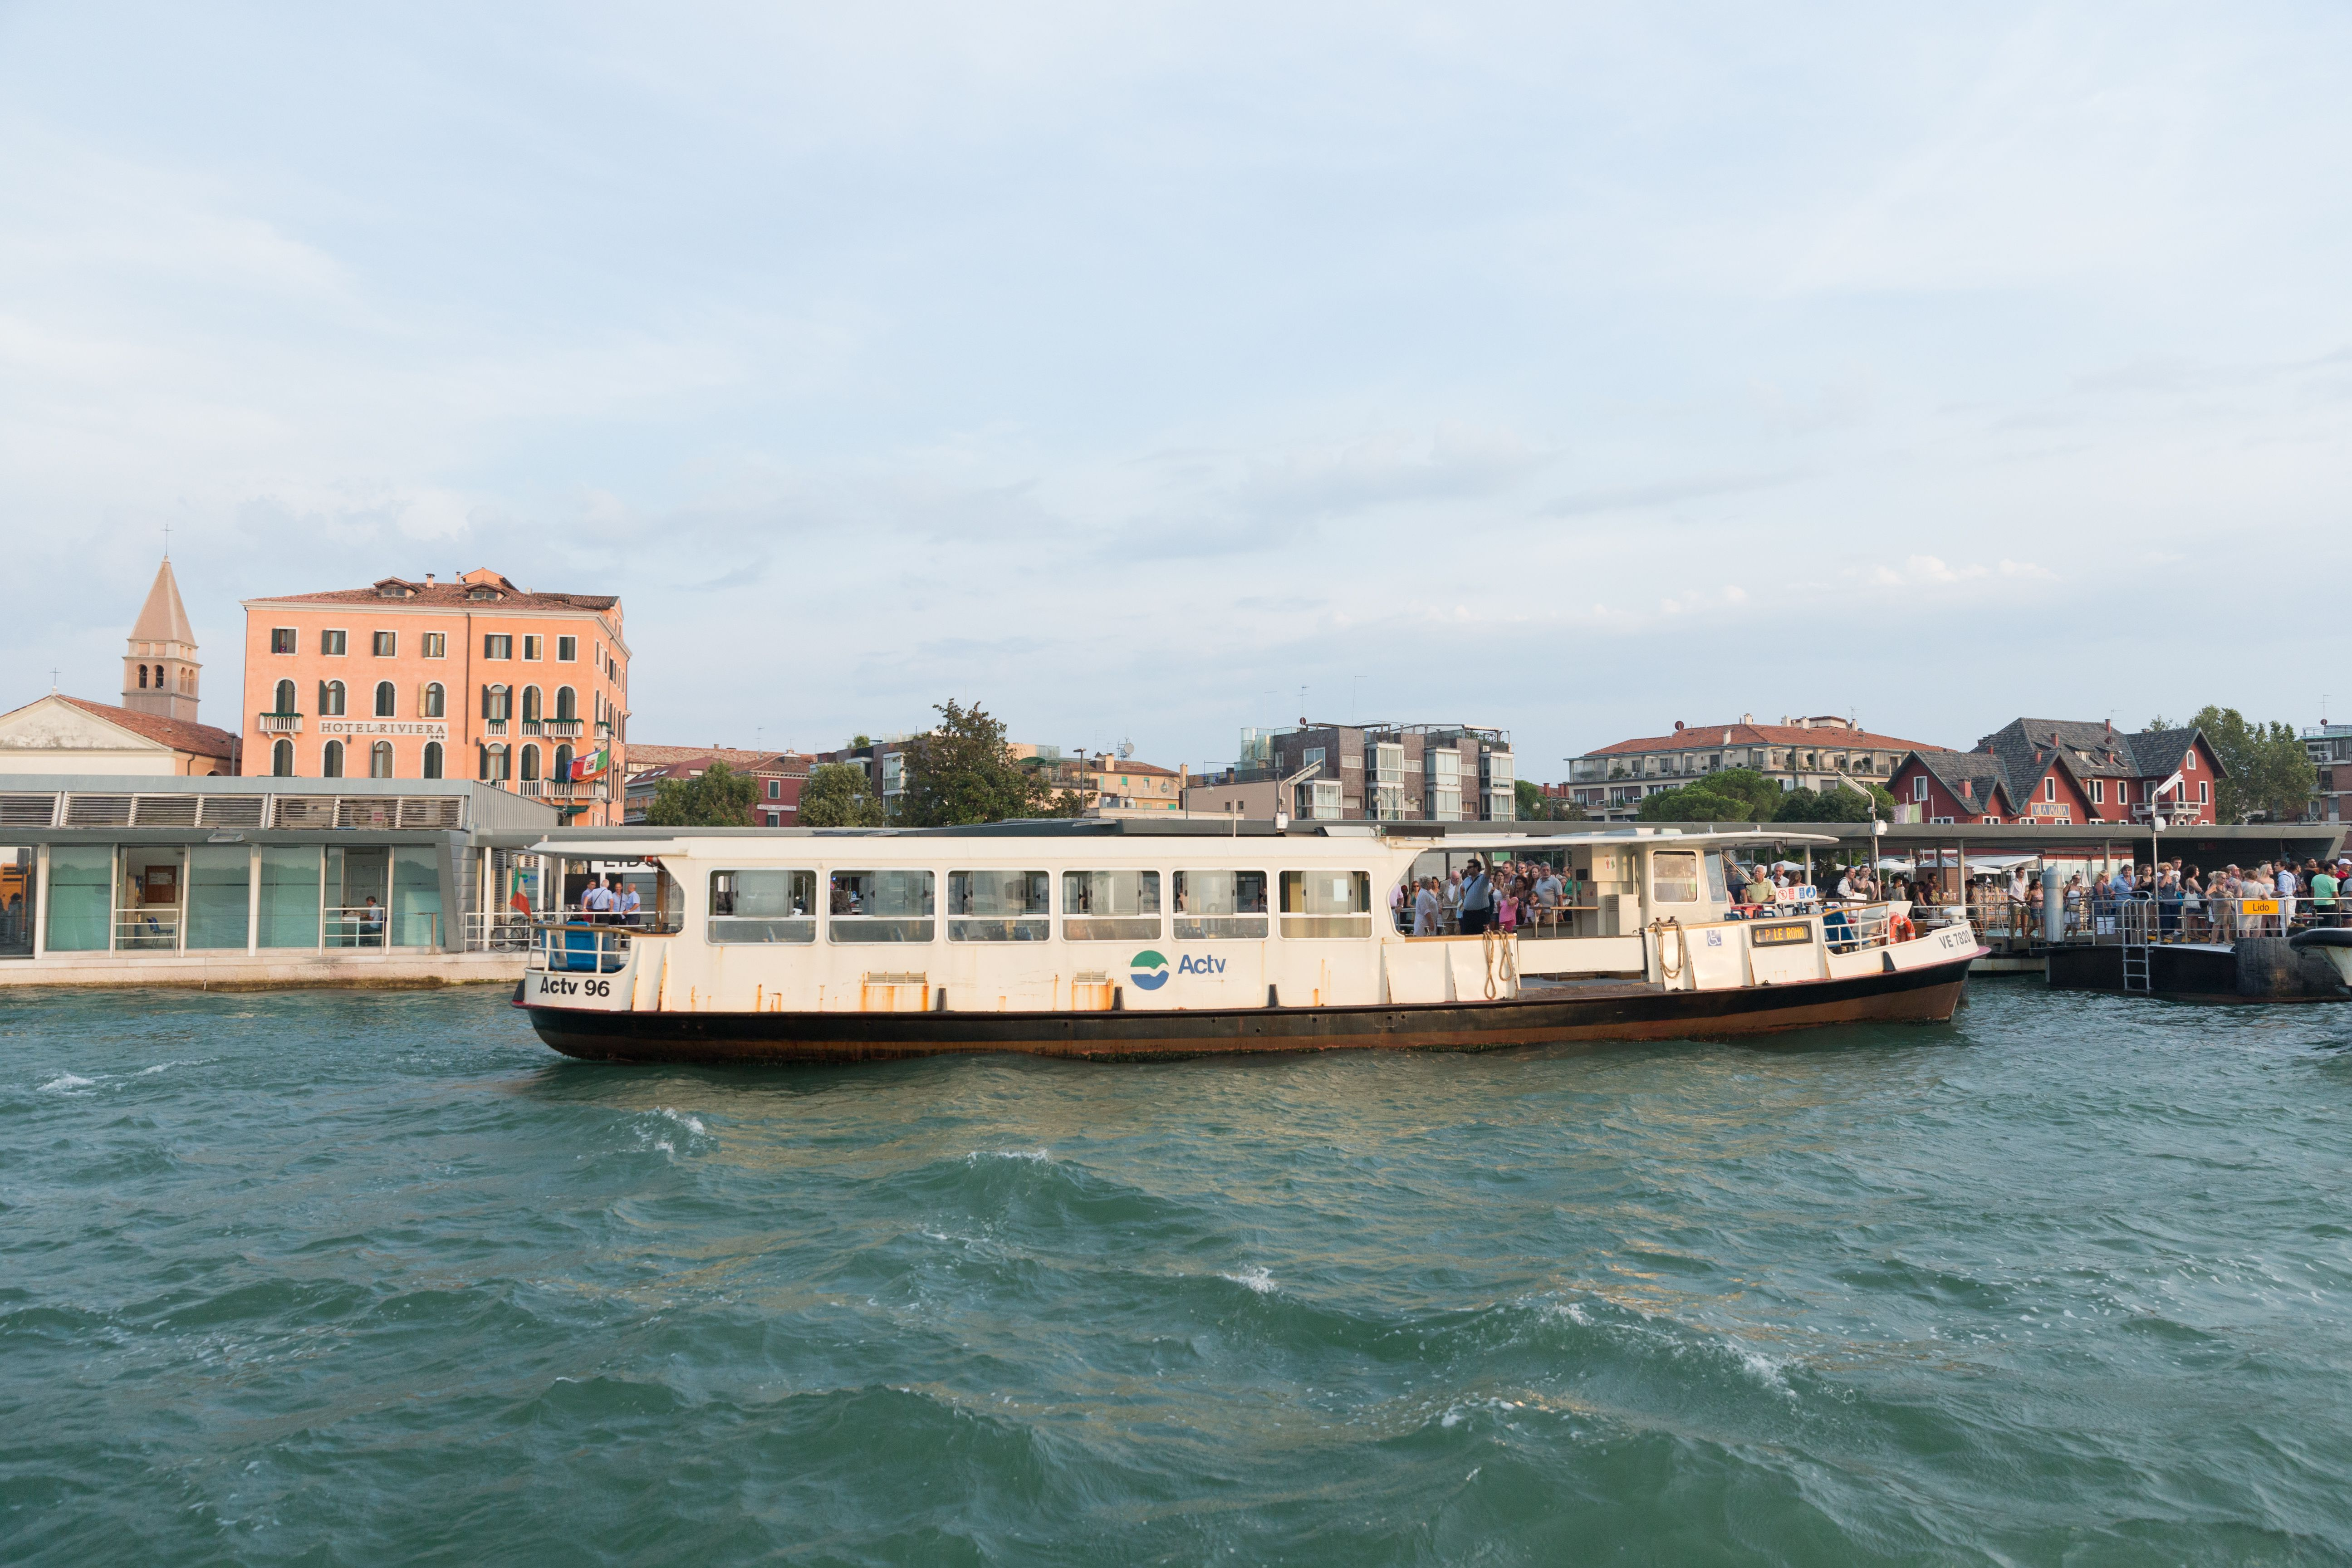 Vaporetto ferry in front of the Lido